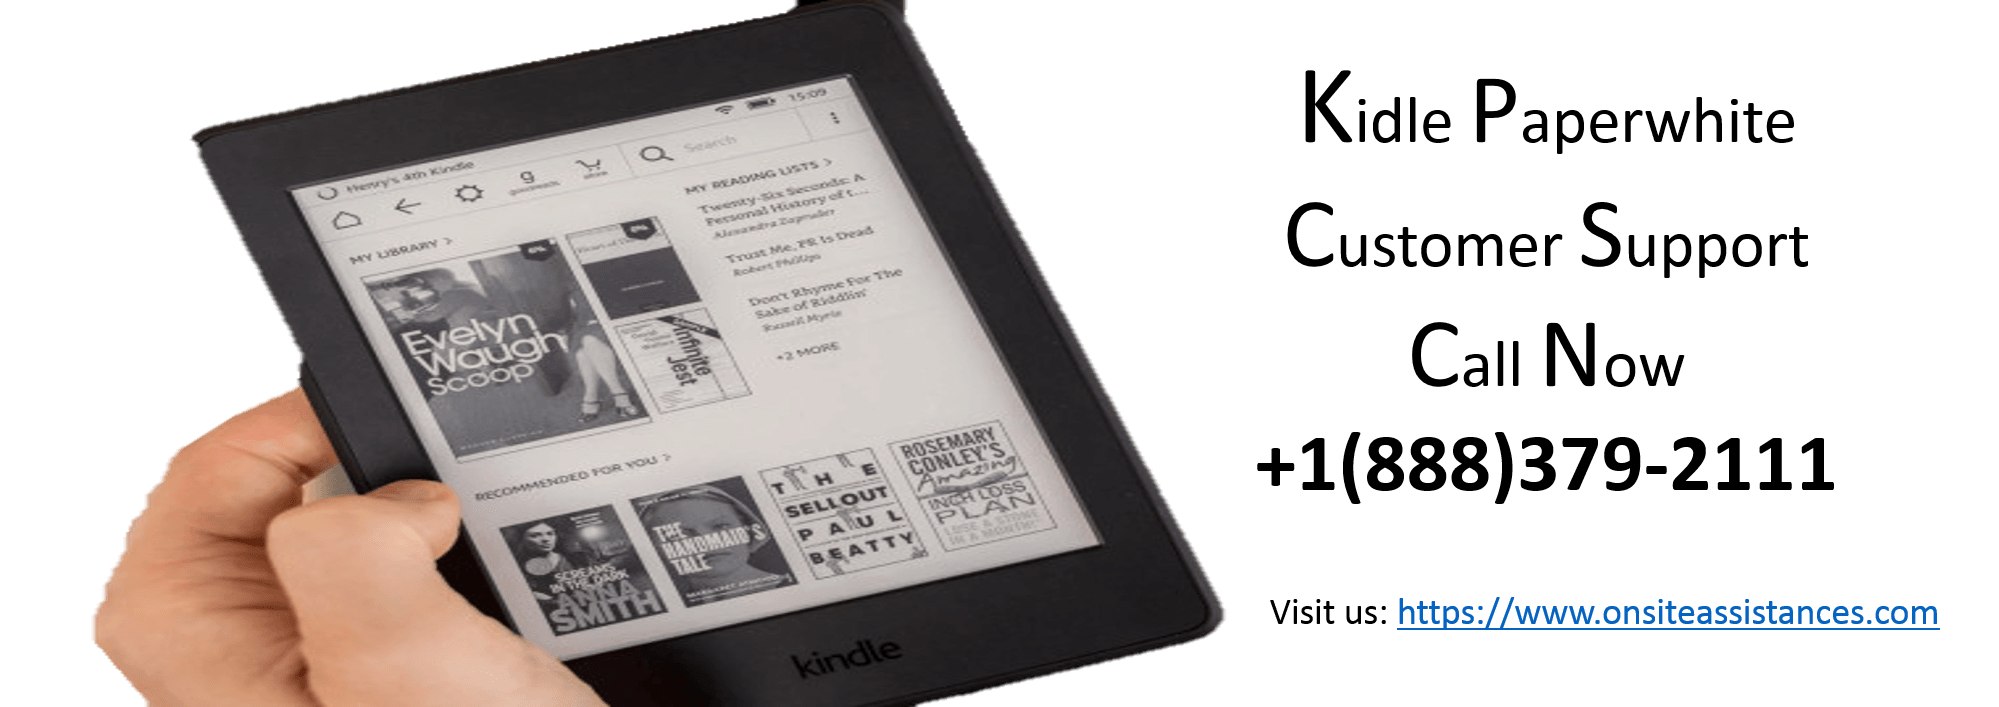 Kindle paperwhite customer support.jpg